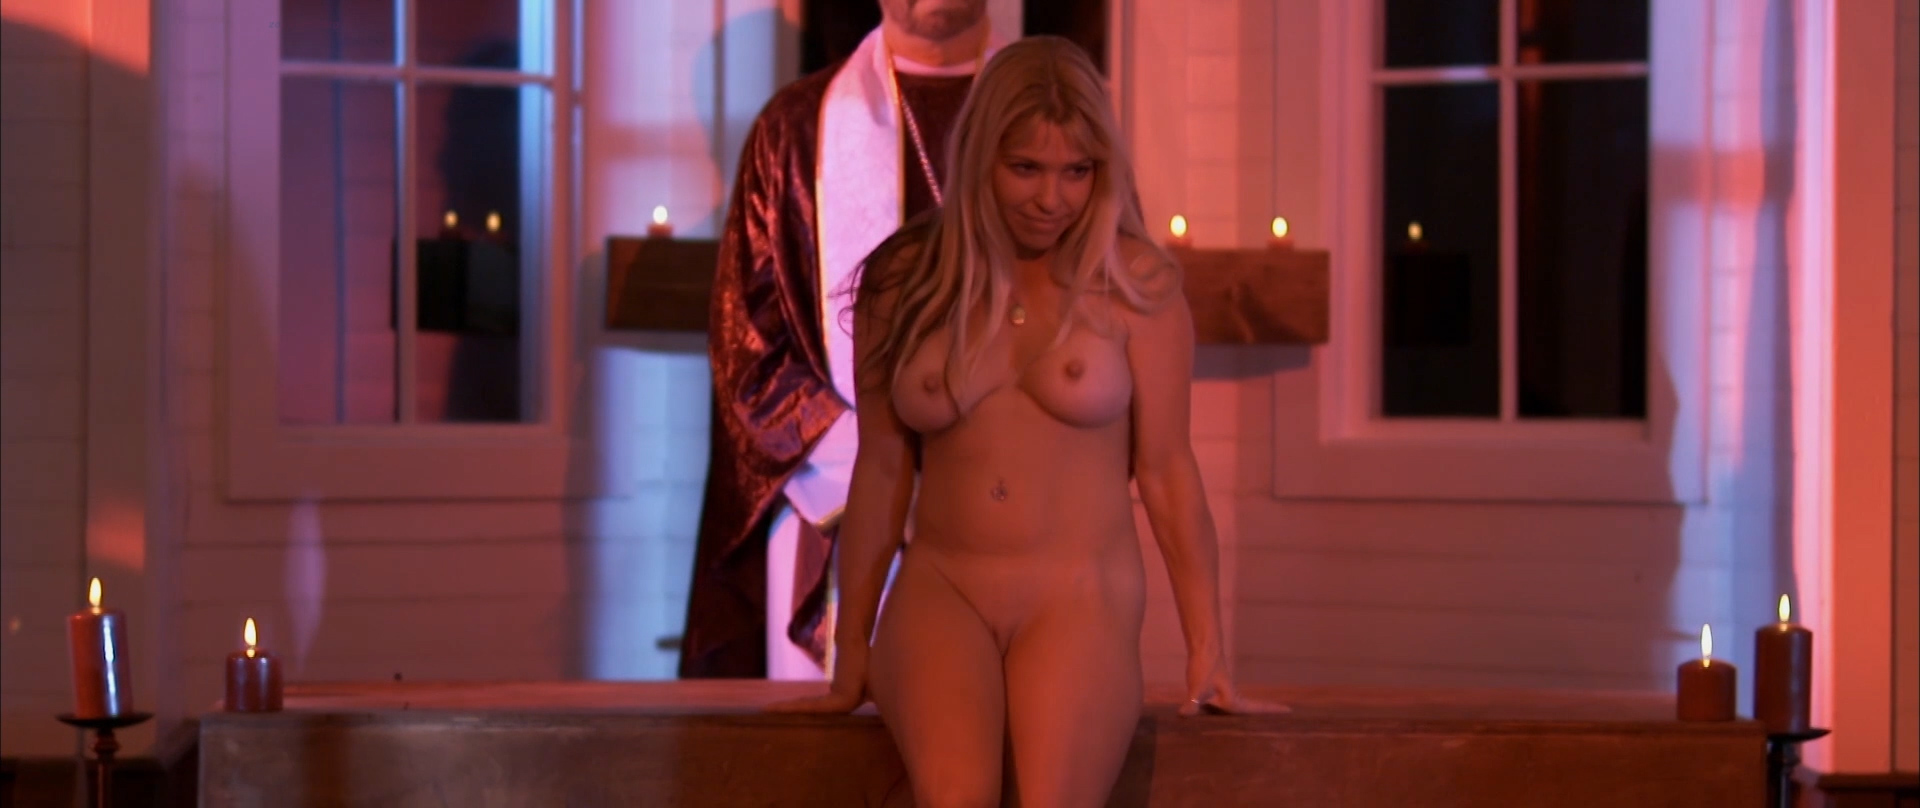 Krystyna Ahlers nude , Jennifer Worthington nude full frontal and others all nude - Girls Gone Dead (2012) hd1080p (10)